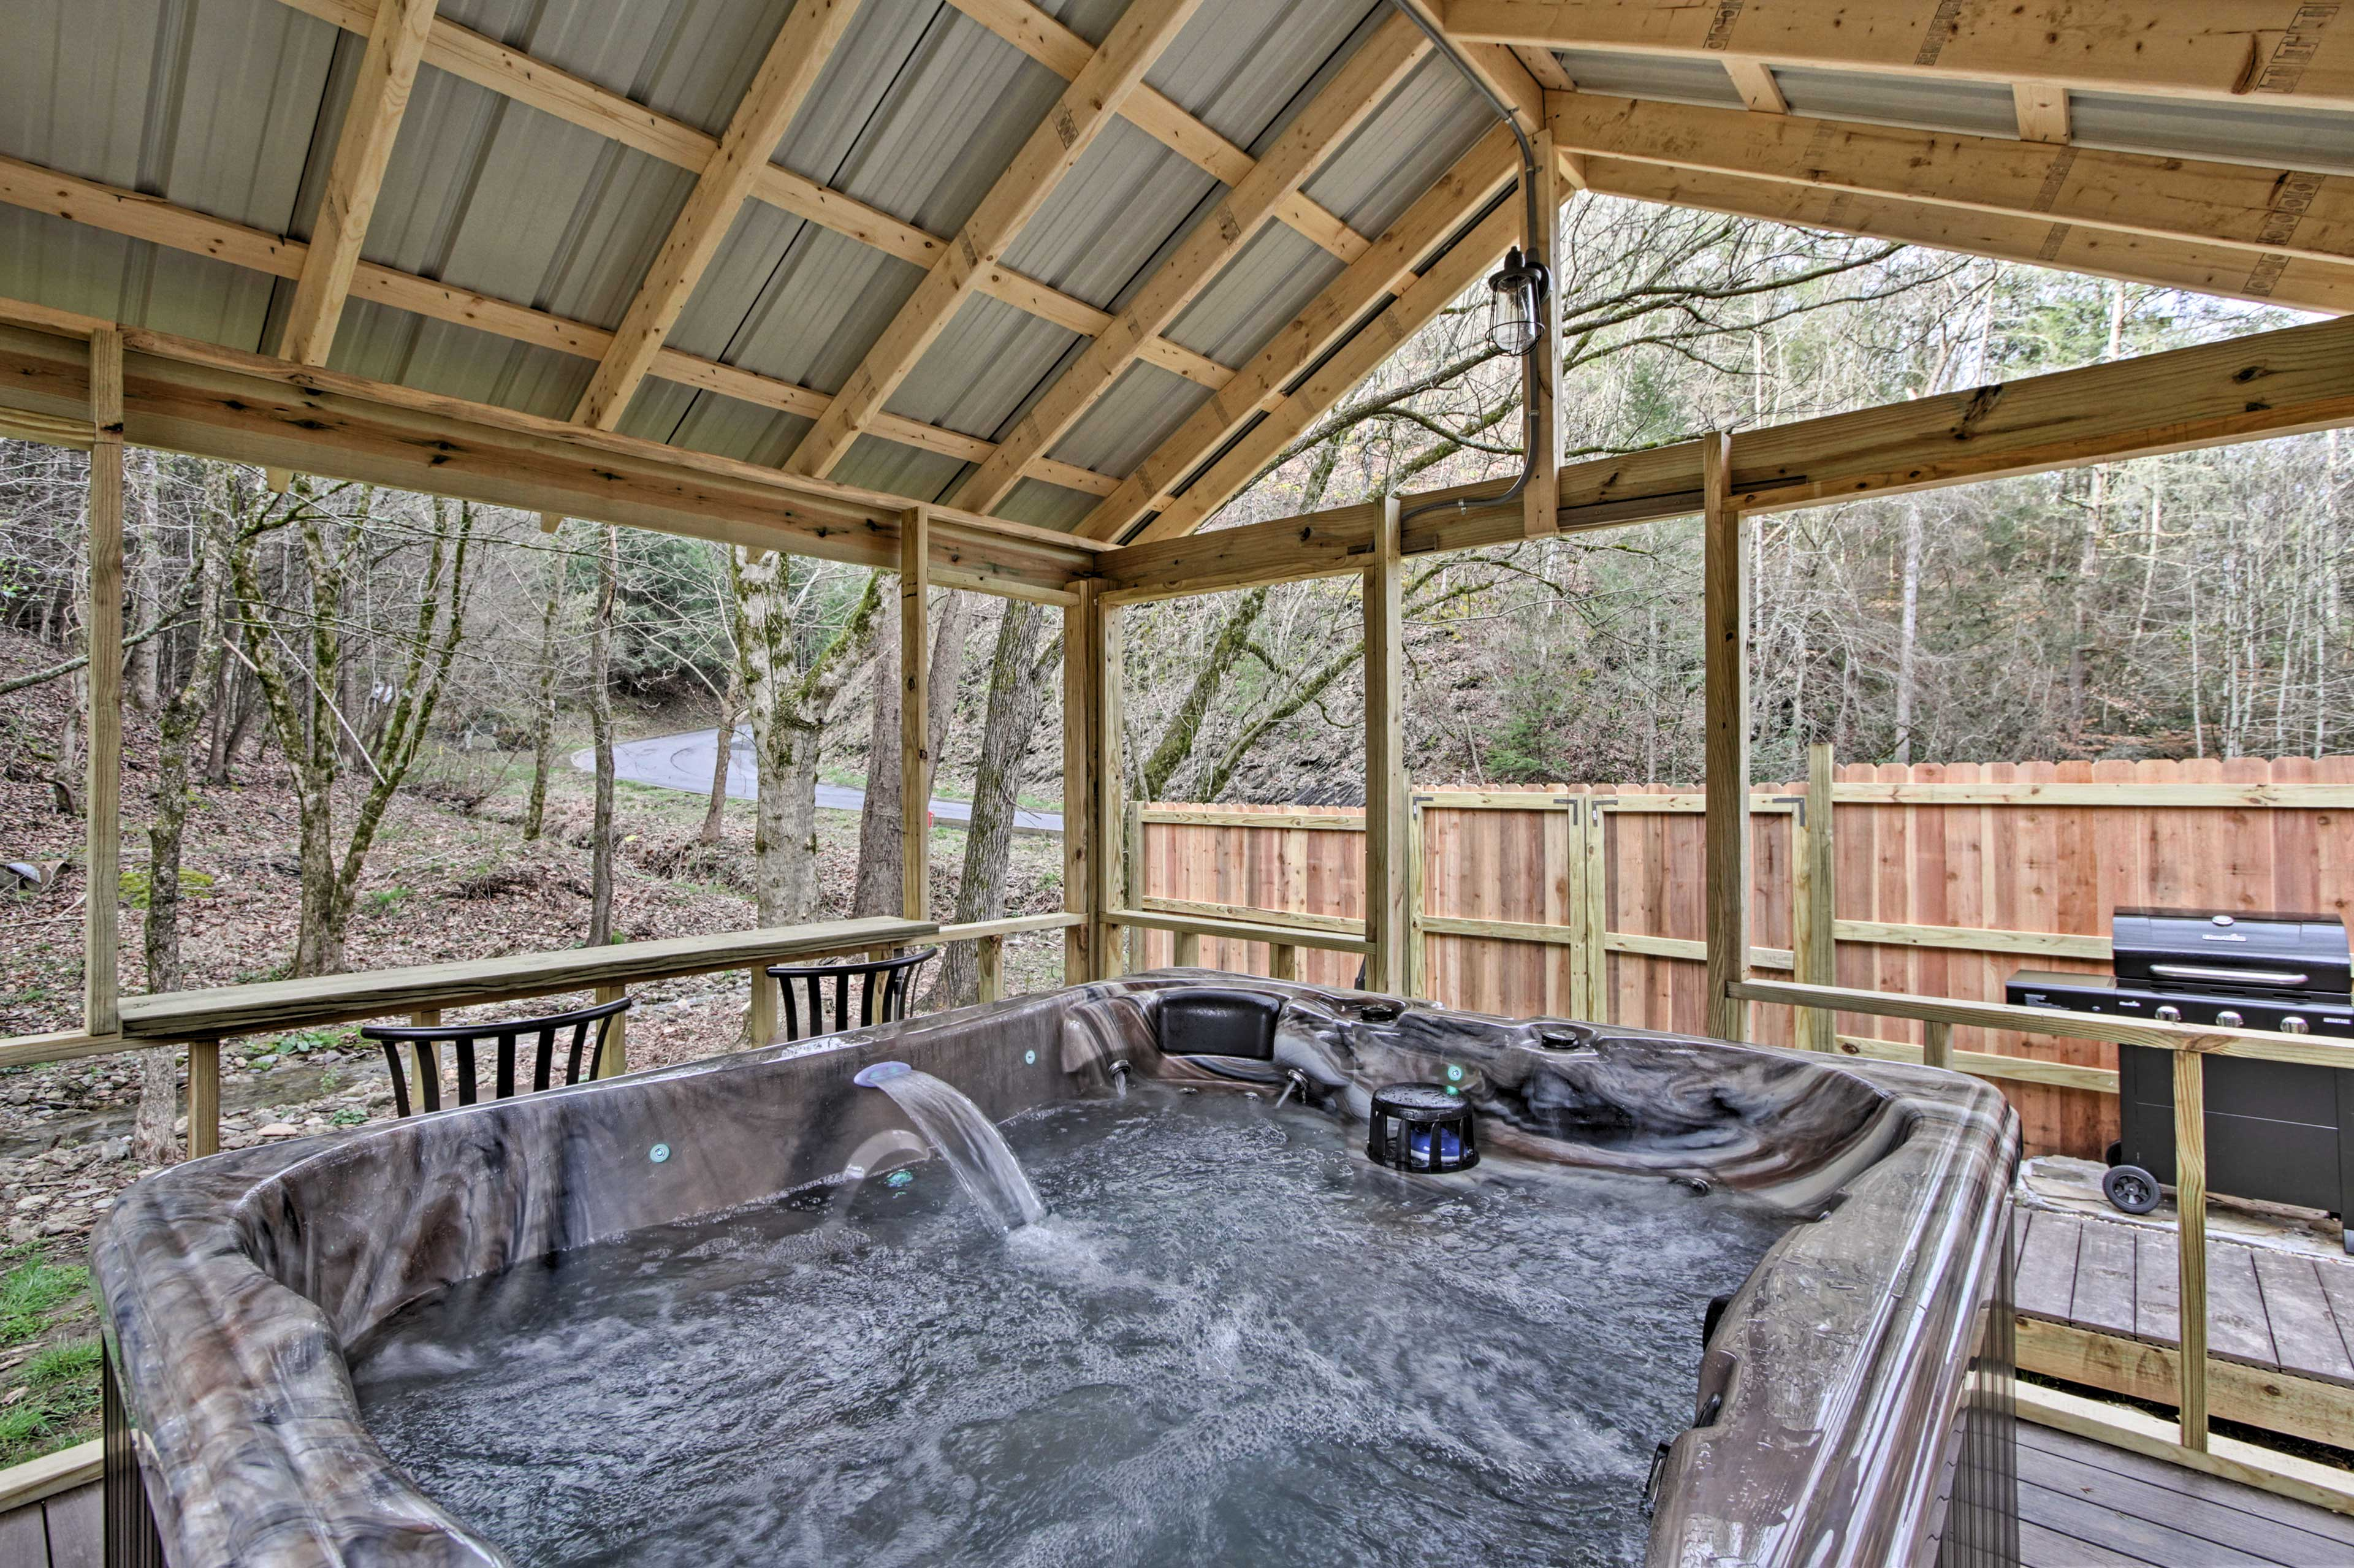 Soak in the hot tub during your stay at 'Just Fur Relaxin'